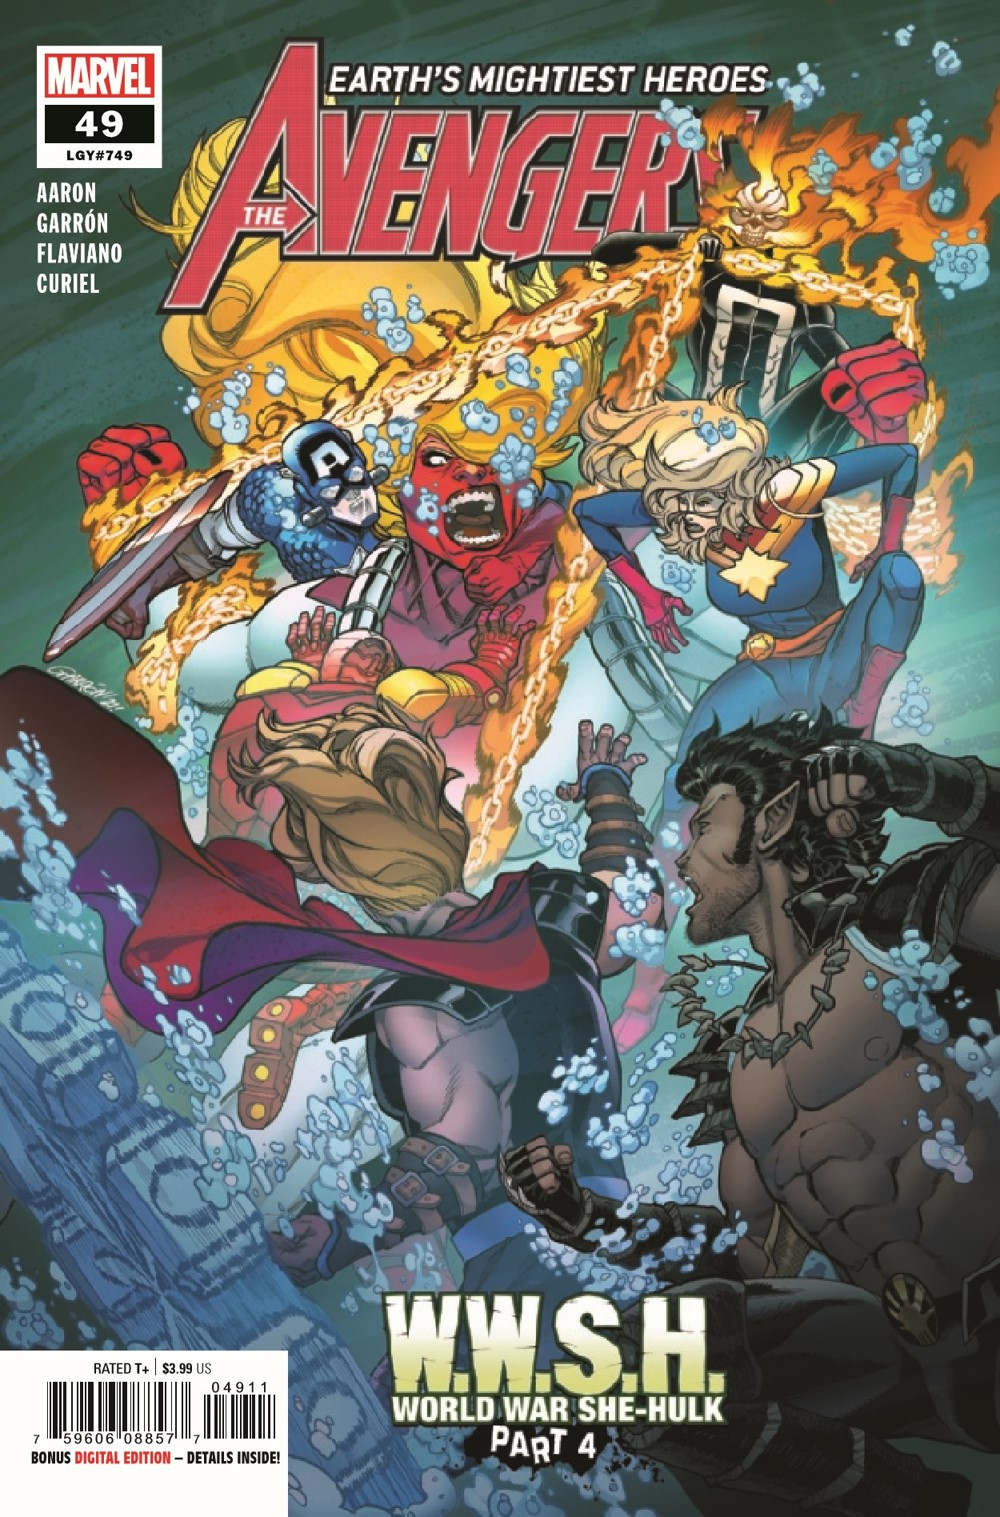 AVEN2018049_Preview-1 ComicList Previews: AVENGERS #49